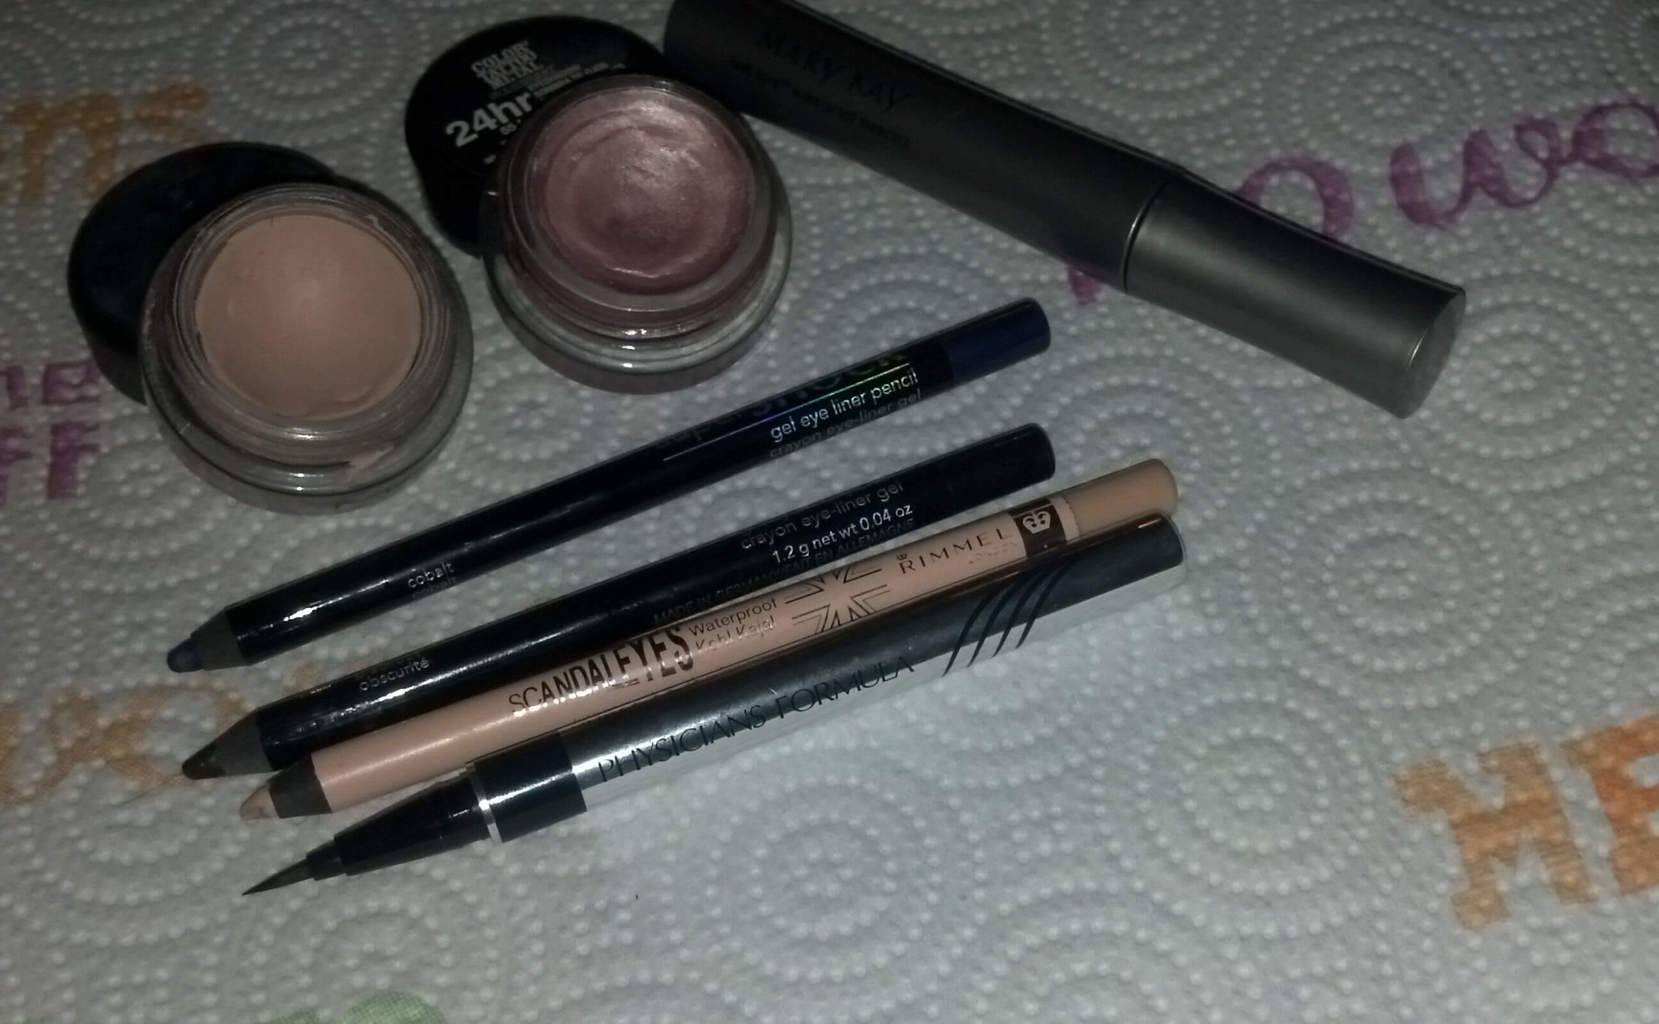 Beth and beautys lorac pro champagne eye tutorial beth beauty lorac pro champagne eye tutorial other products baditri Gallery